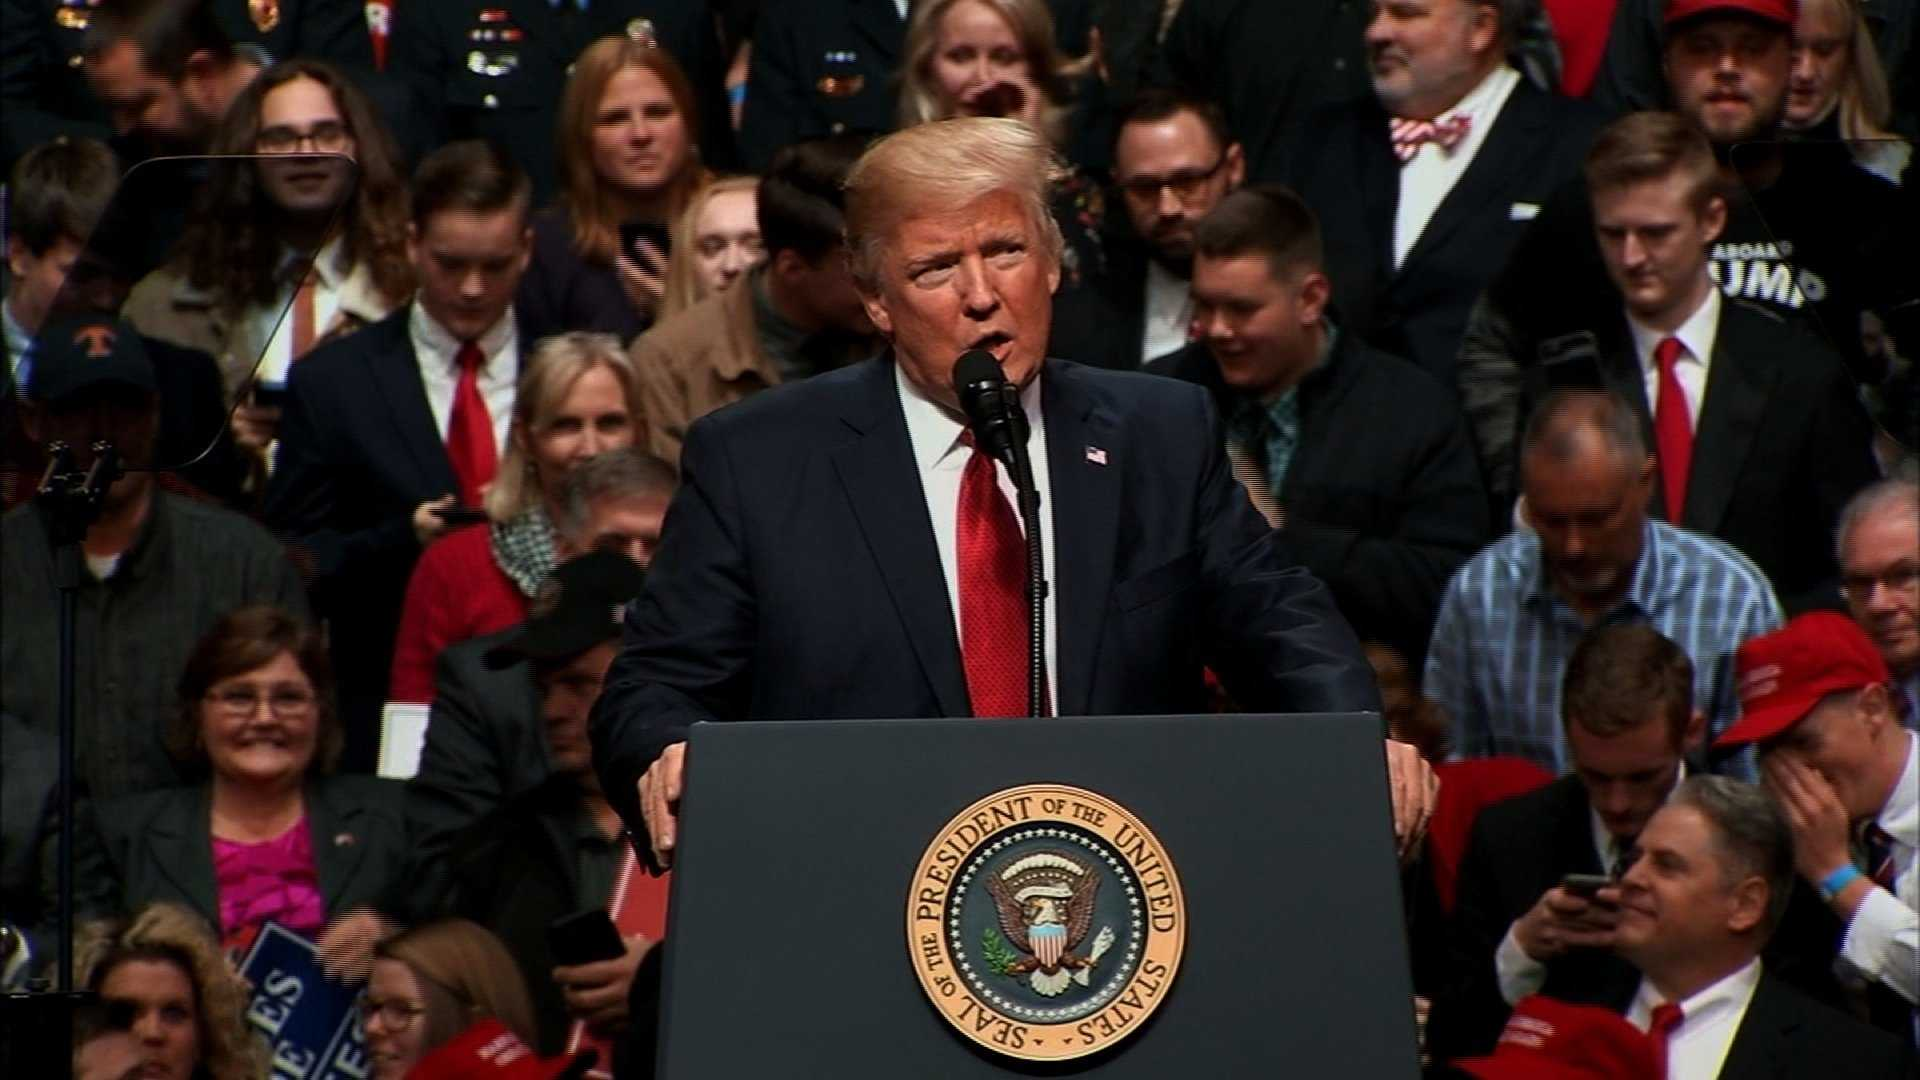 President Trump speaks at a 'Make America Great Again' rally in Nashville, Tennessee on March 15, 2017.